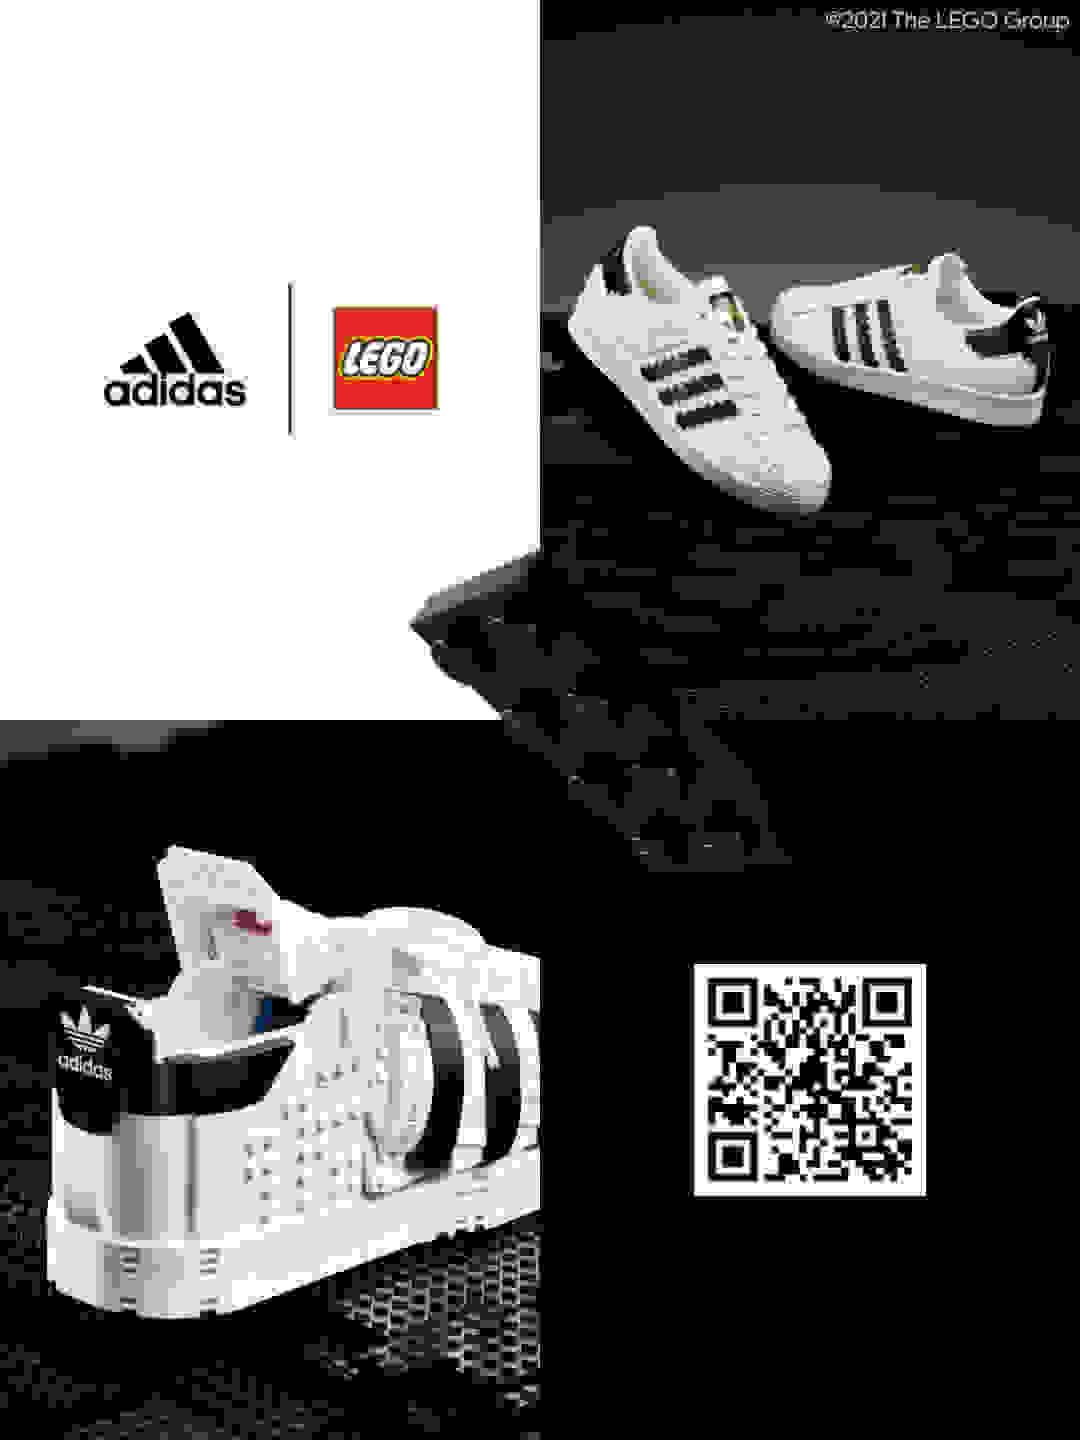 A four-quadrant grid image featuring a pair of adidas Superstar sneakers built out of LEGO® bricks and a black 3D lego brick.